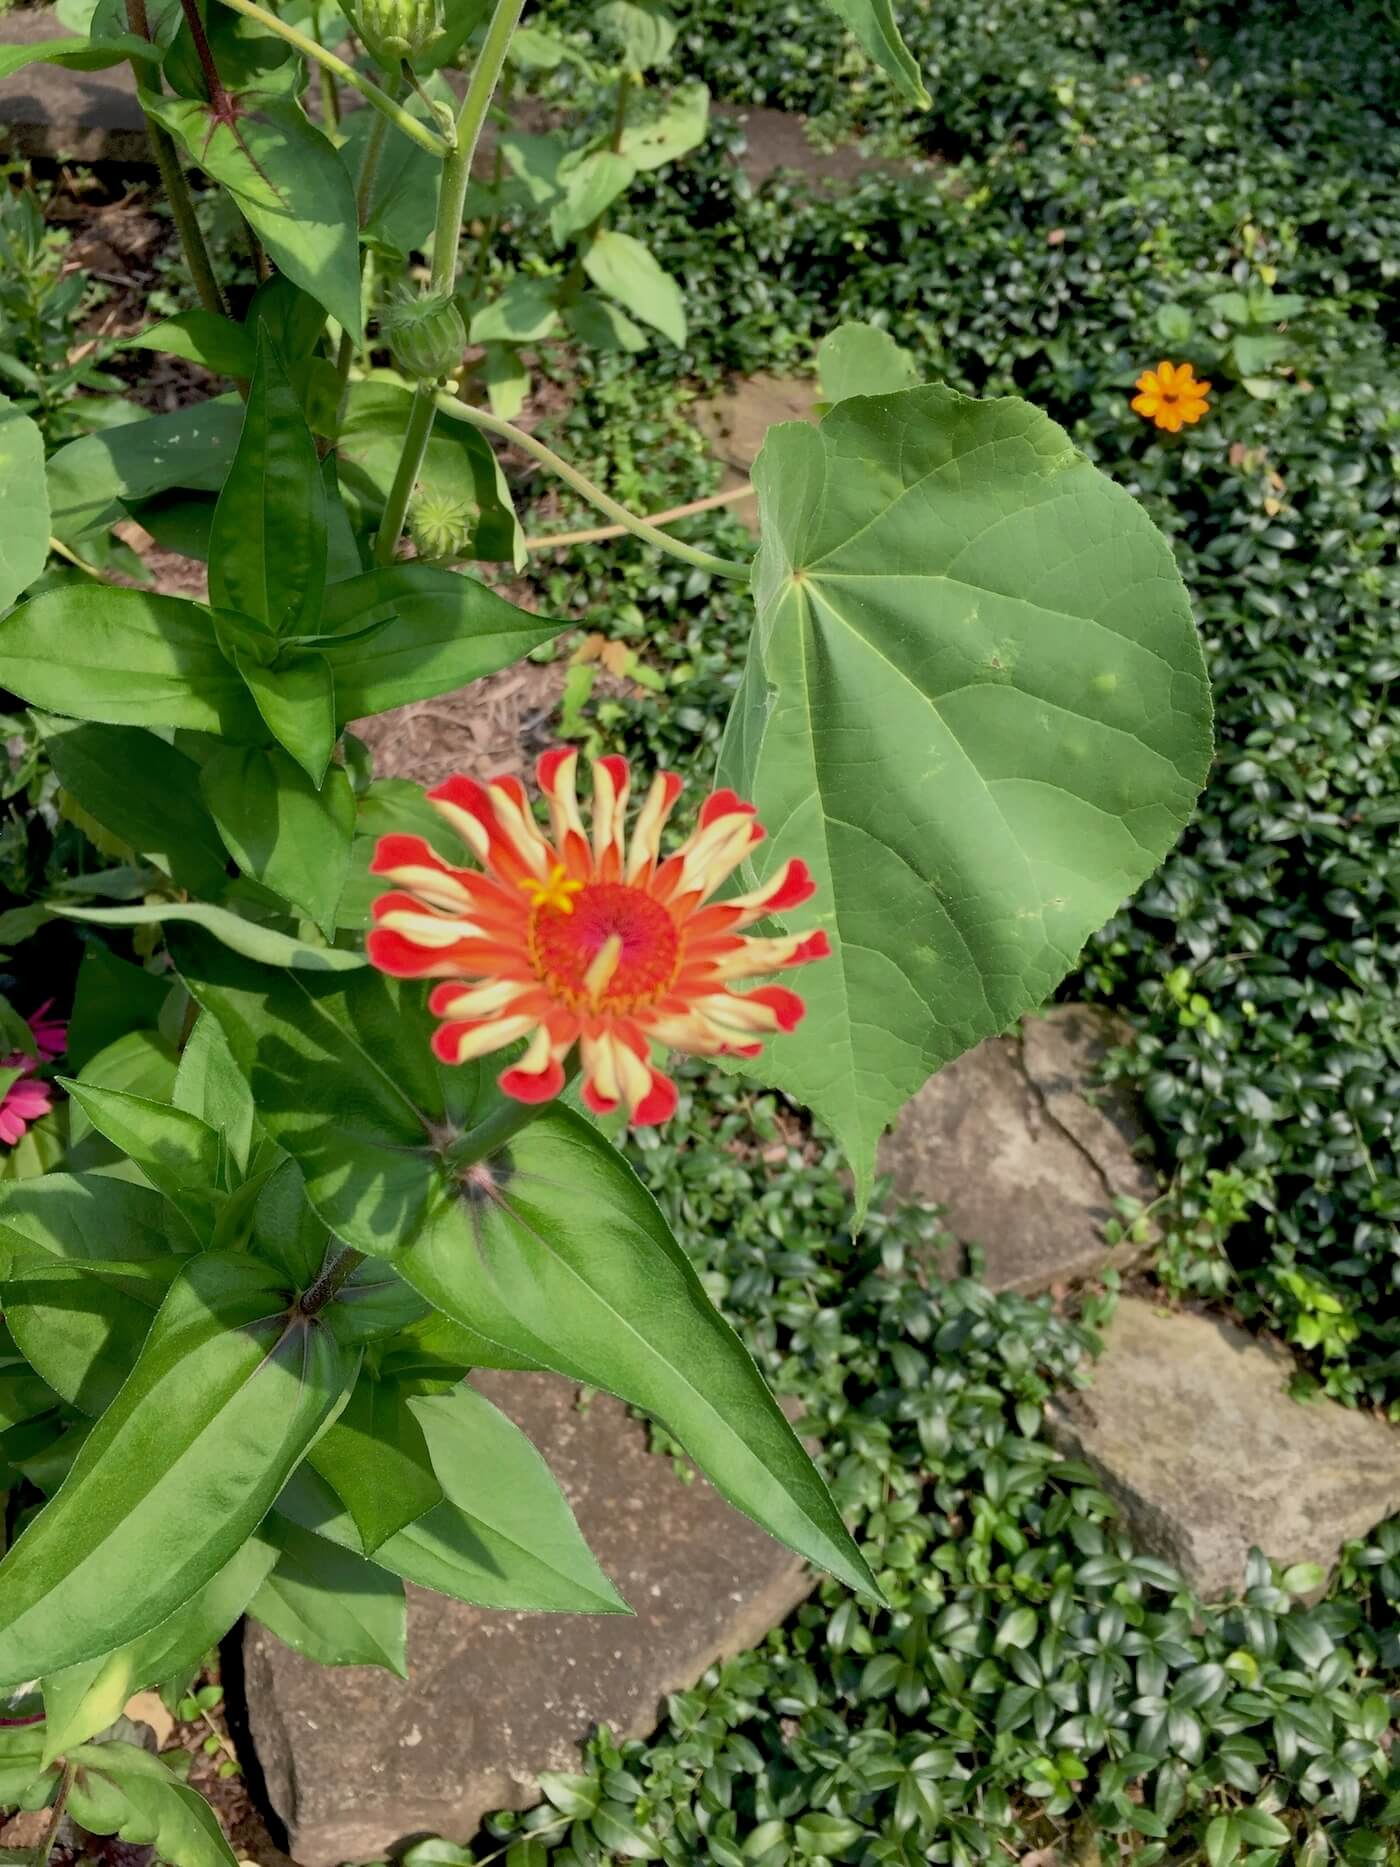 Zinnia flowers in multiple colors